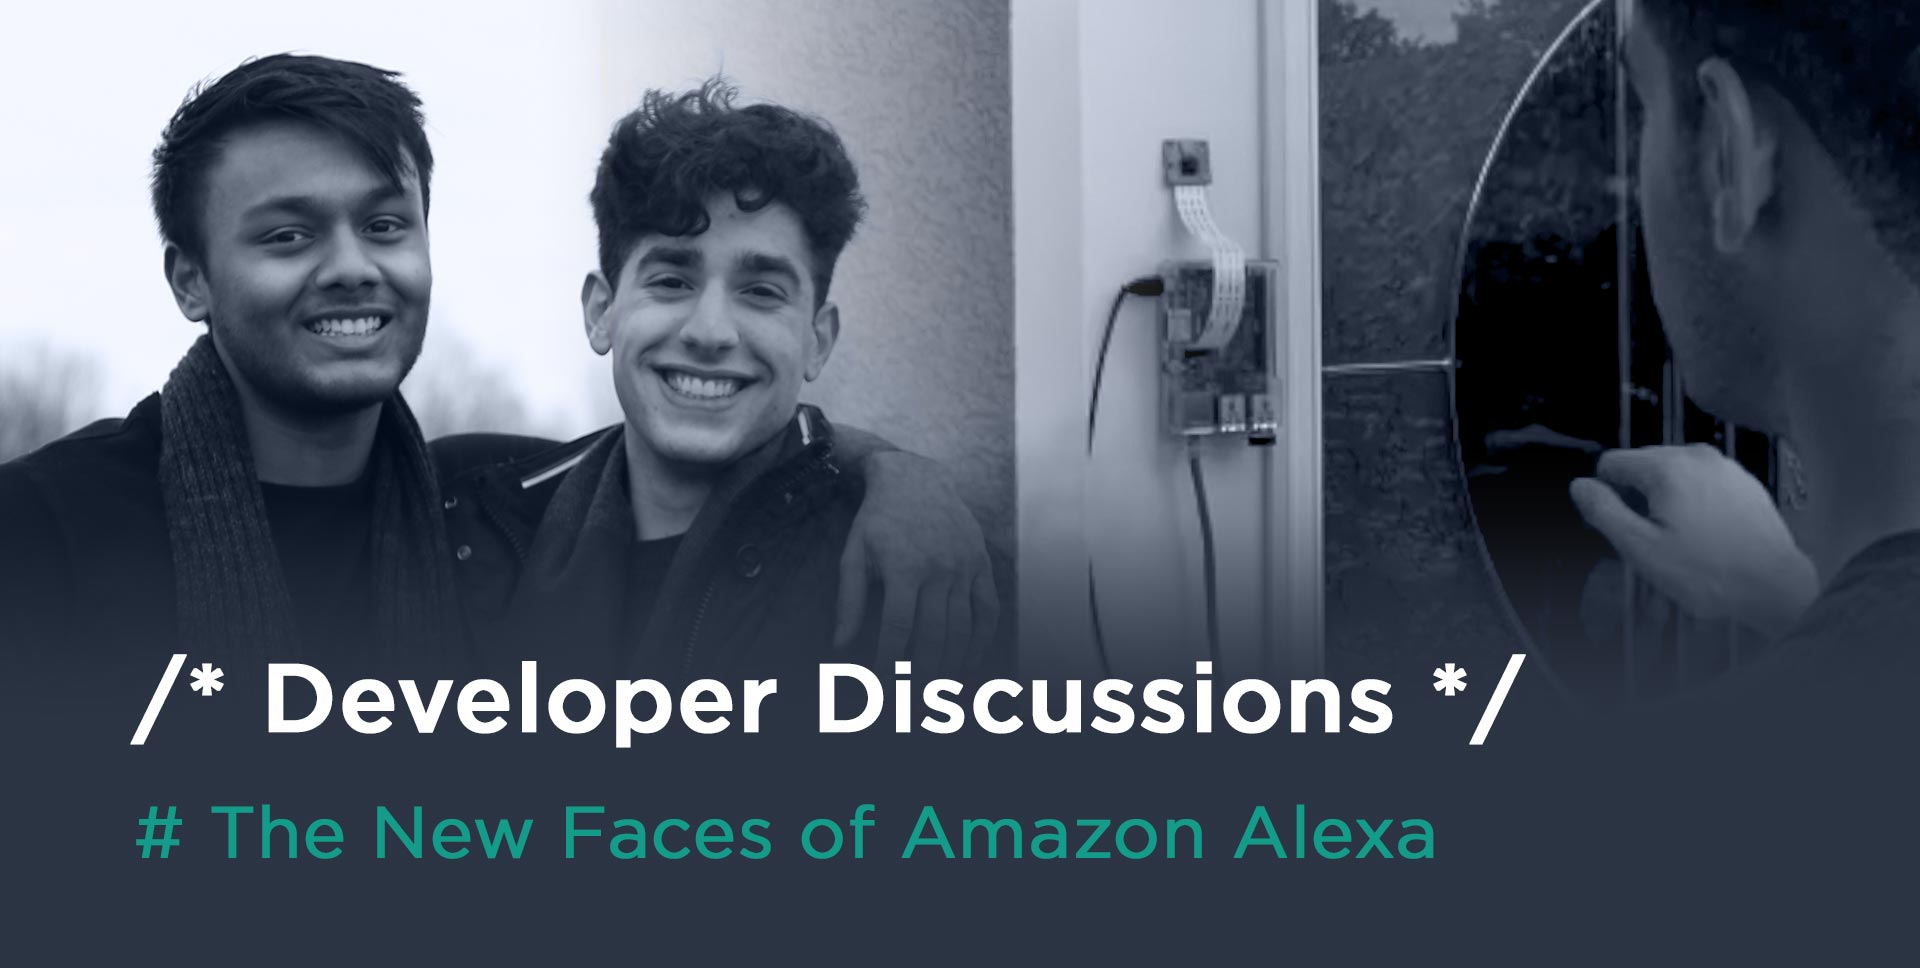 Developers Create Amazon Alexa Doorbell With Kairos Face